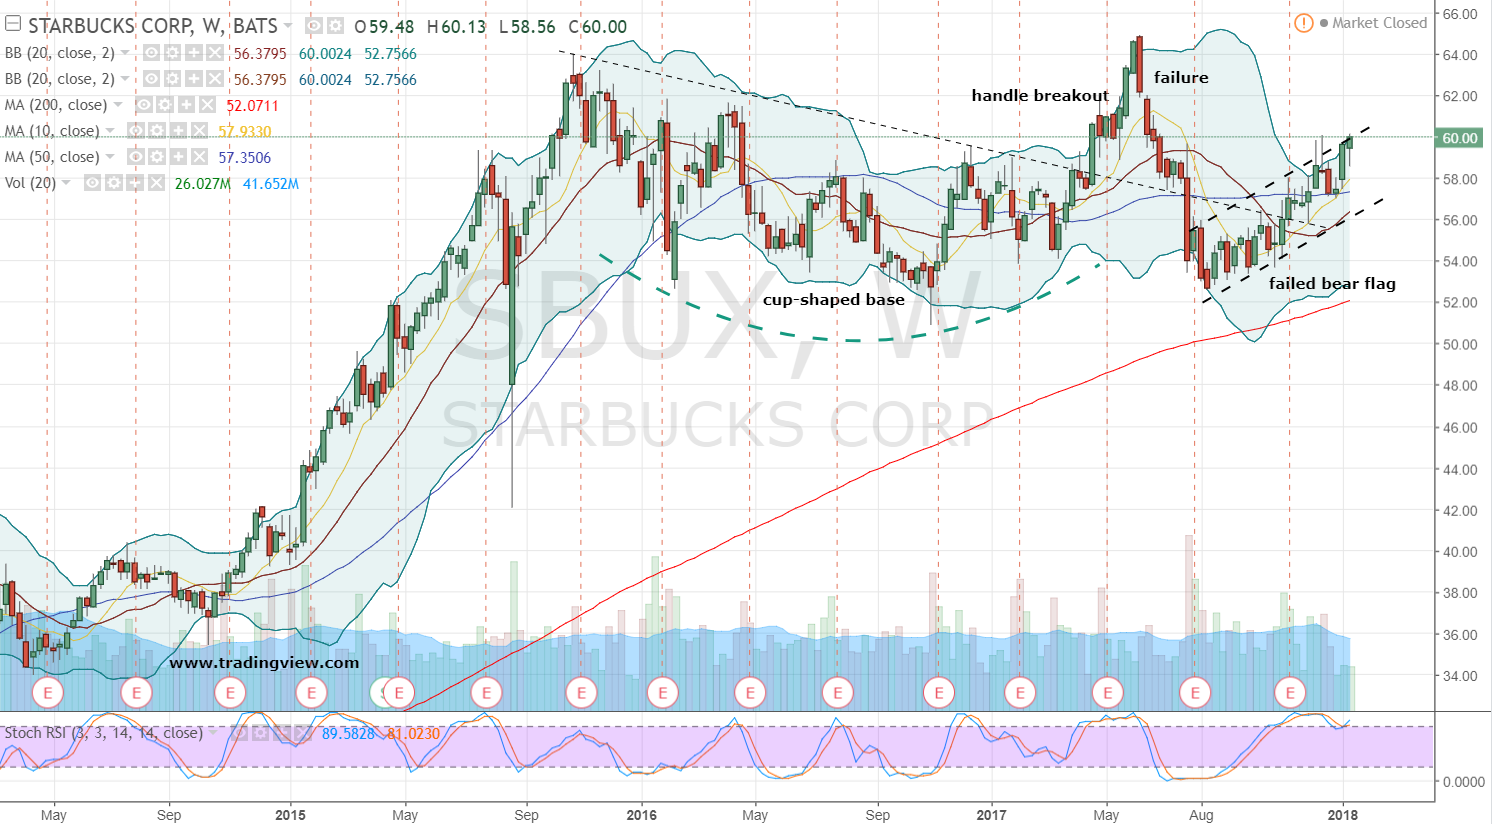 Starbucks Corp (NASDAQ:SBUX) Institutional Investors Sentiment